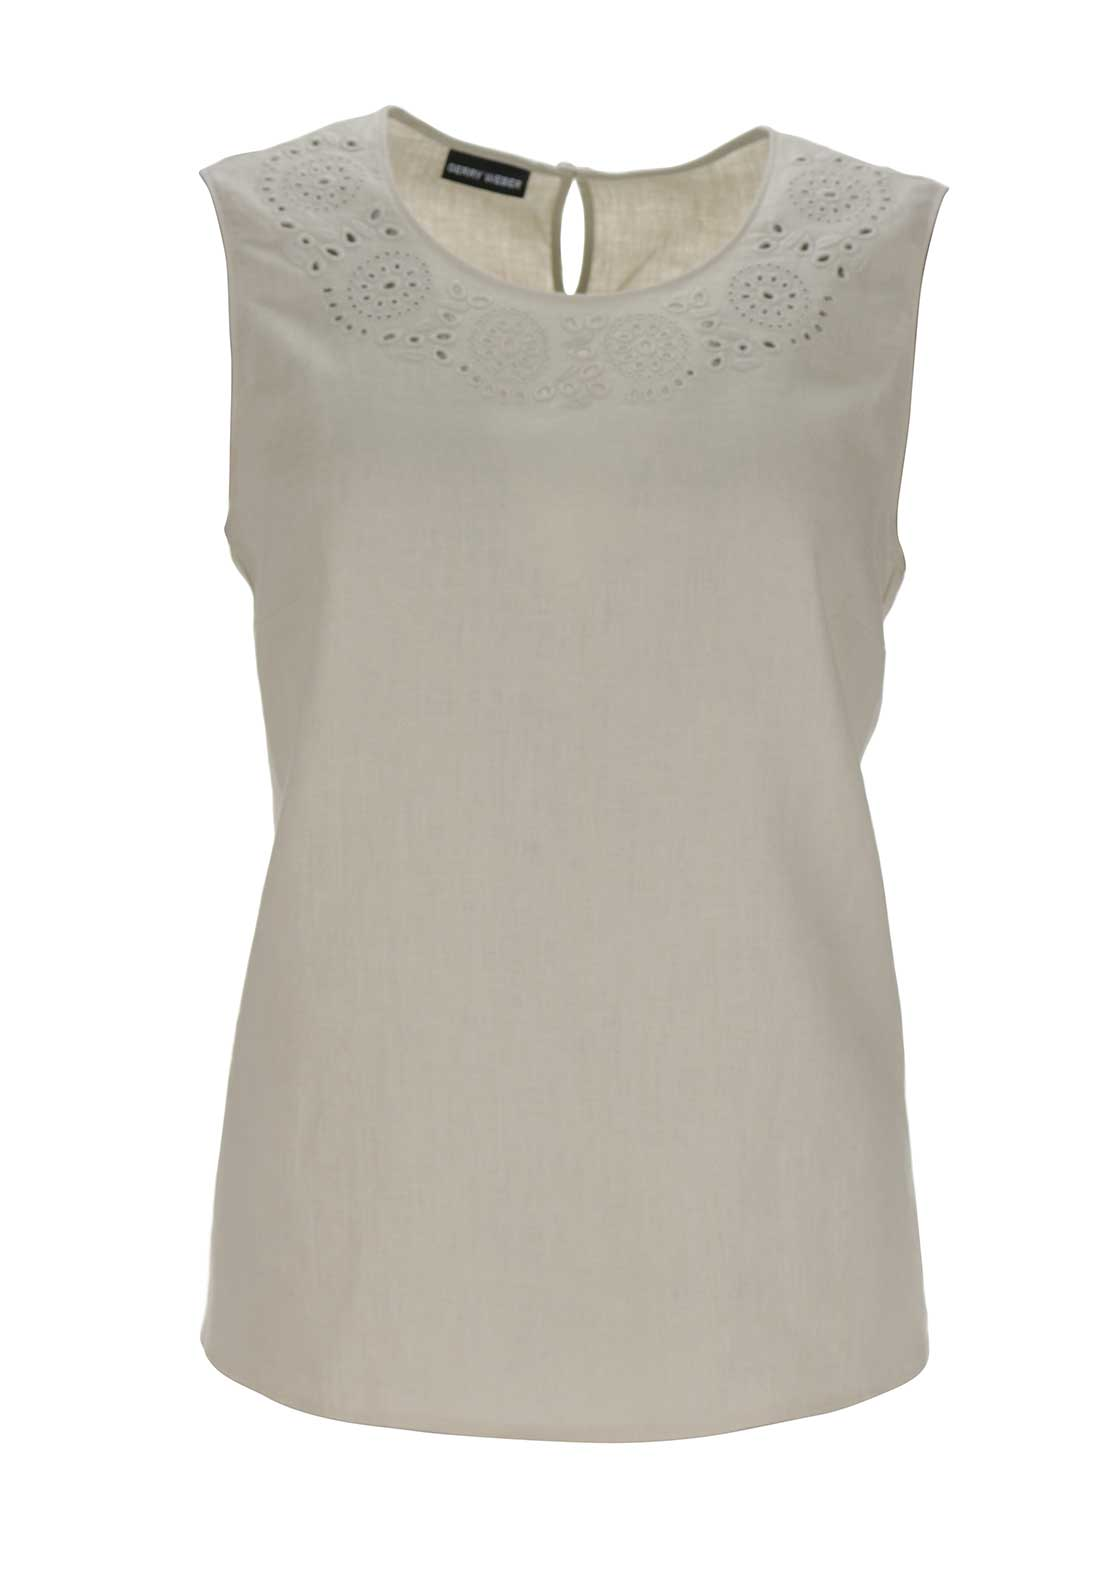 Gerry Weber Laser Cut Print Sleeveless Top, Beige